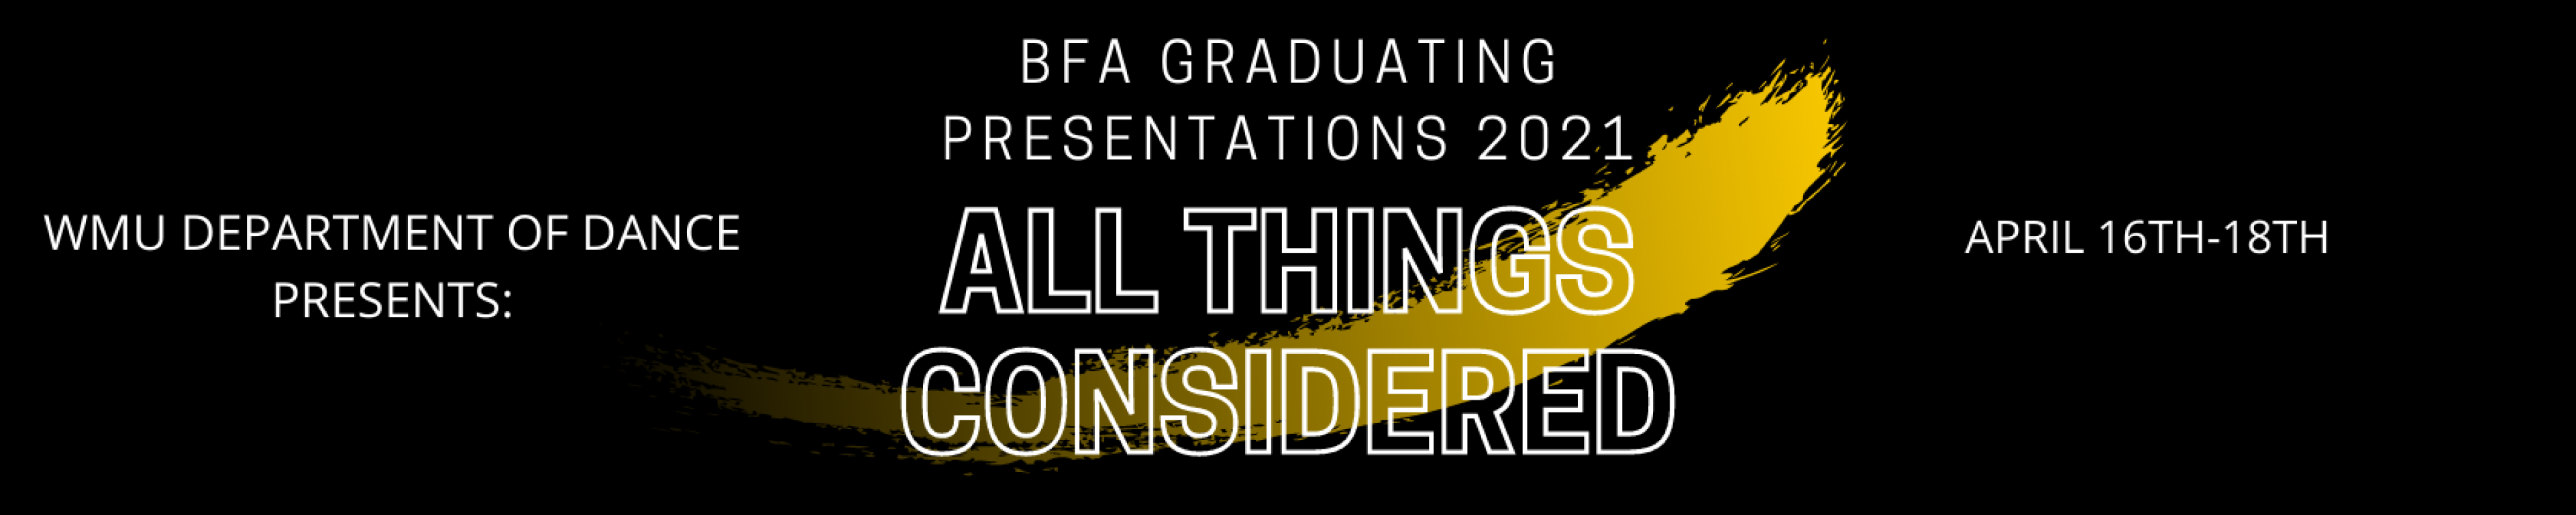 Black graphic with text for 2021 Graduating Presentations.